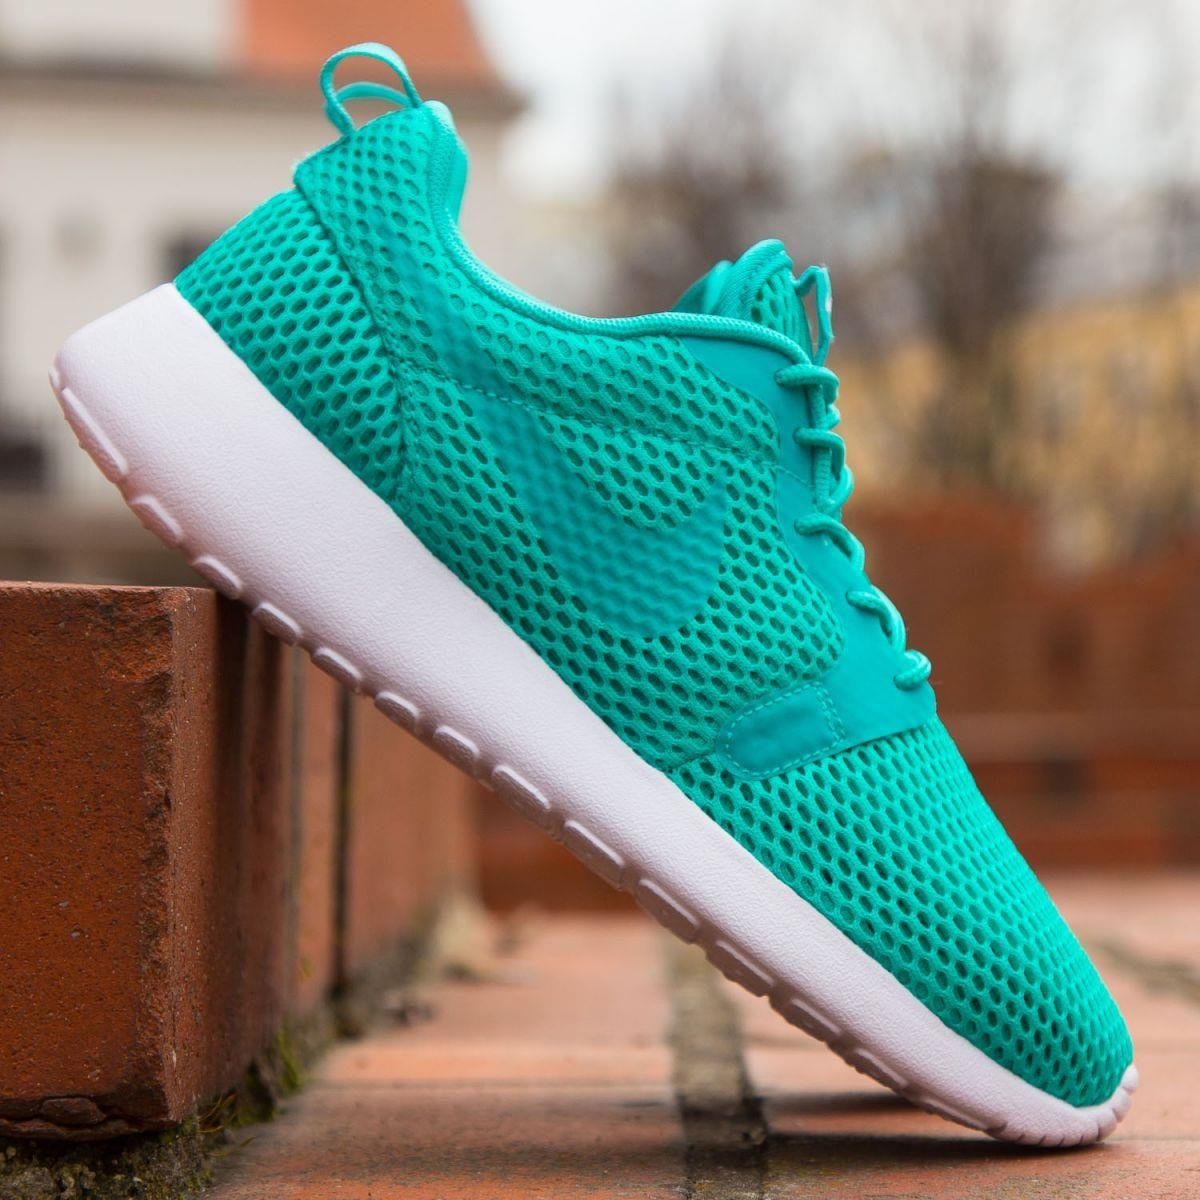 3fa89d474a74 NIKE ROSHE ONE HYP BR 833125-300 - Ceny i opinie - Ceneo.pl